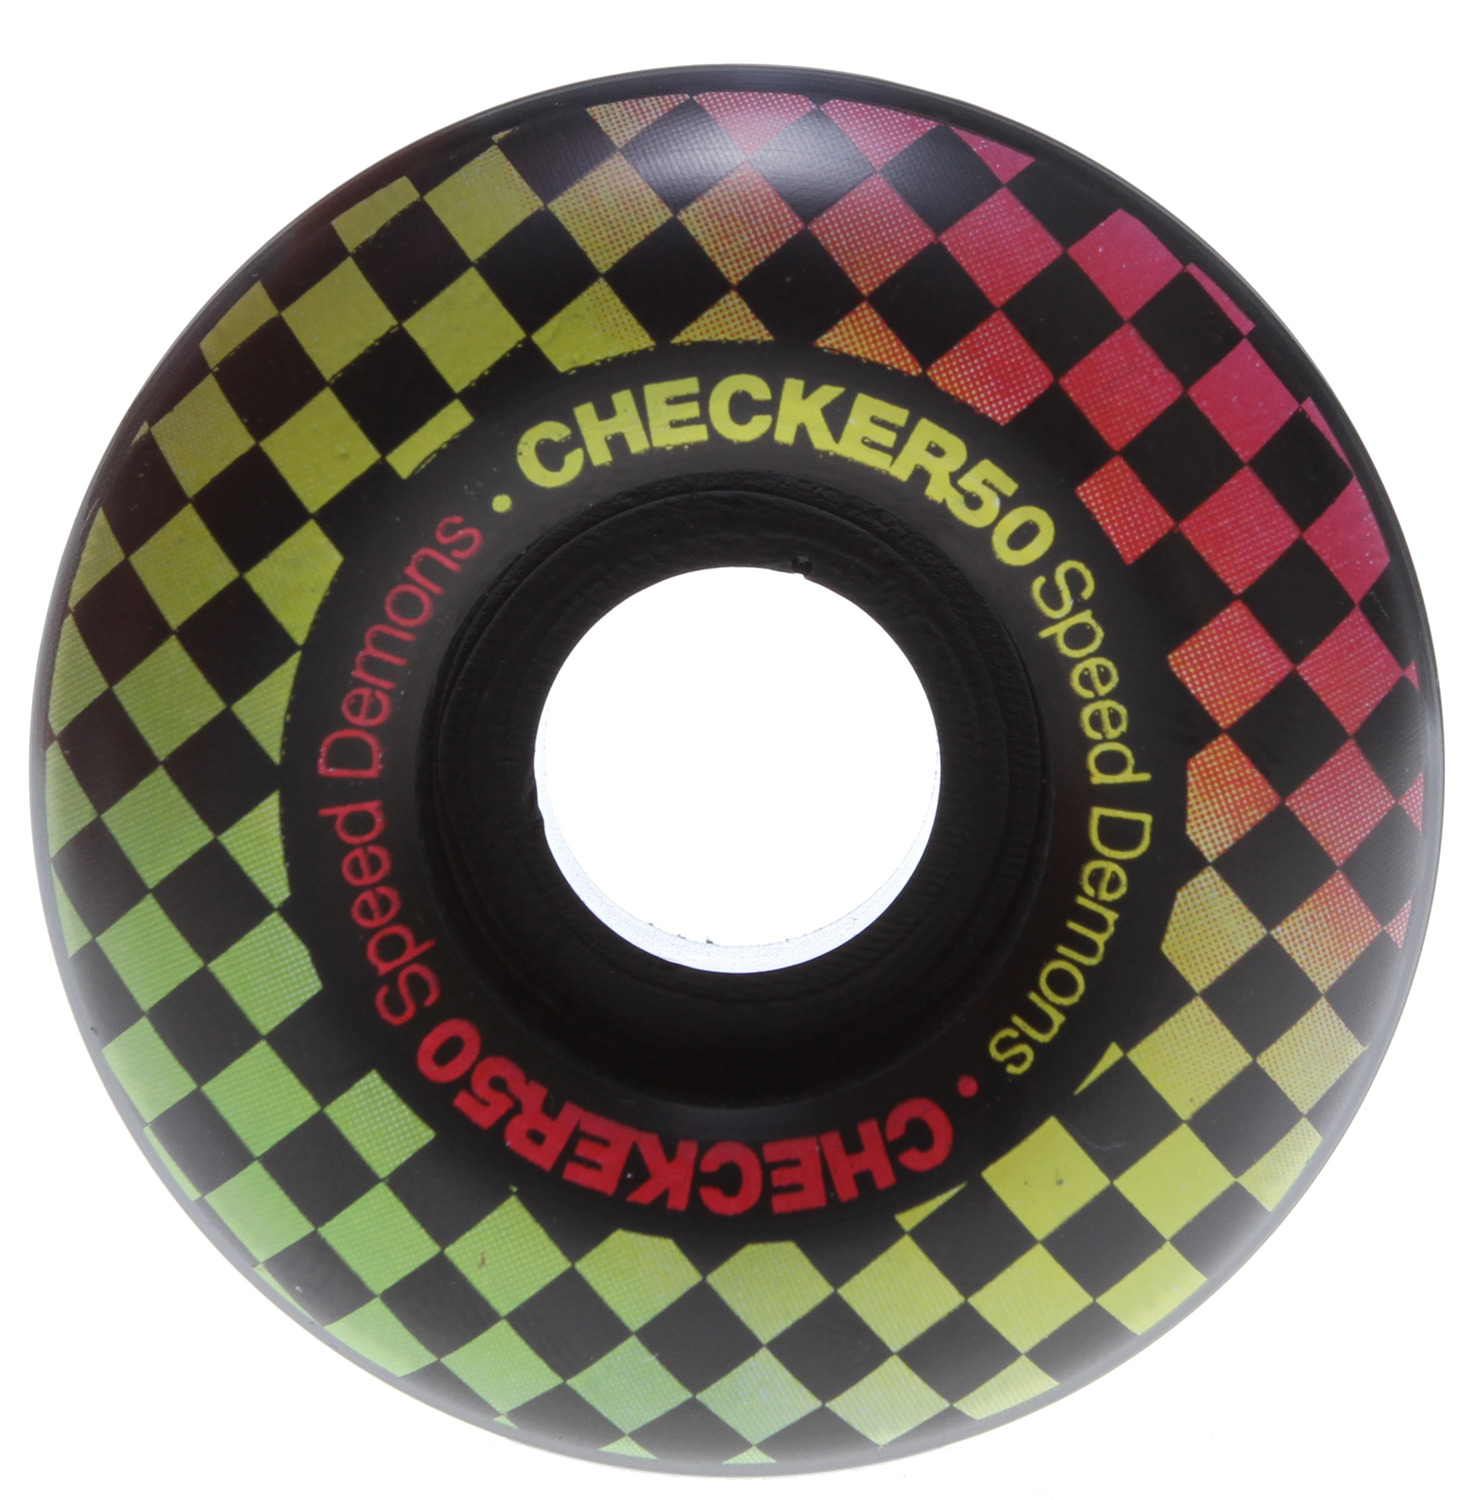 Skateboard Key Features of the Speed Demons Check Fades Skateboard Wheels 50mm: 50mm Wheel Set of four wheels 70A - $12.95